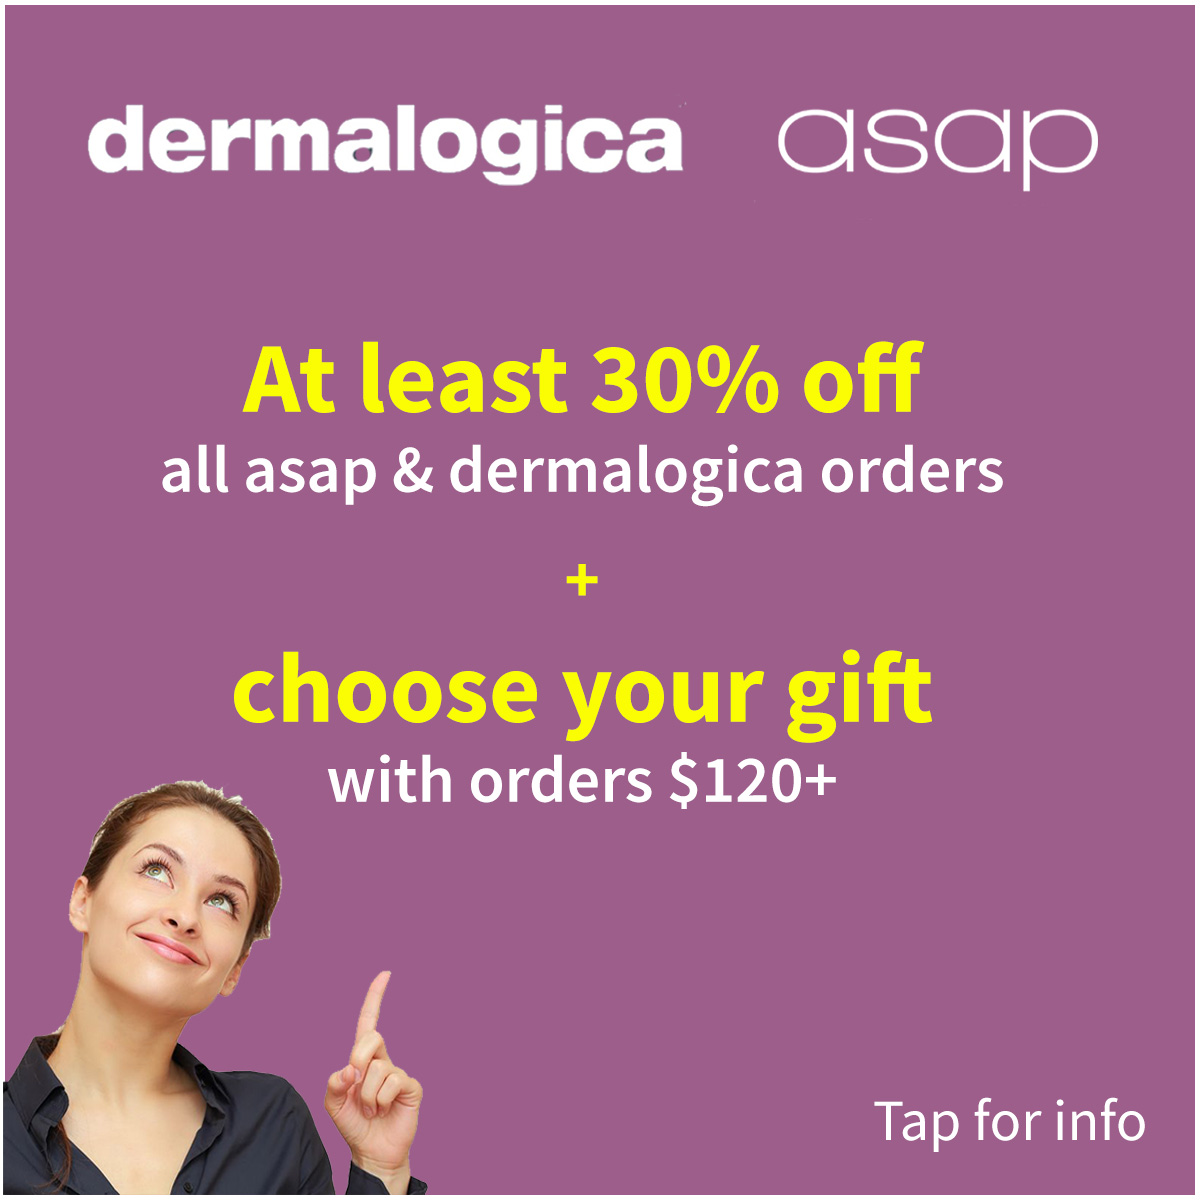 at least 30% off asap and dermalogica